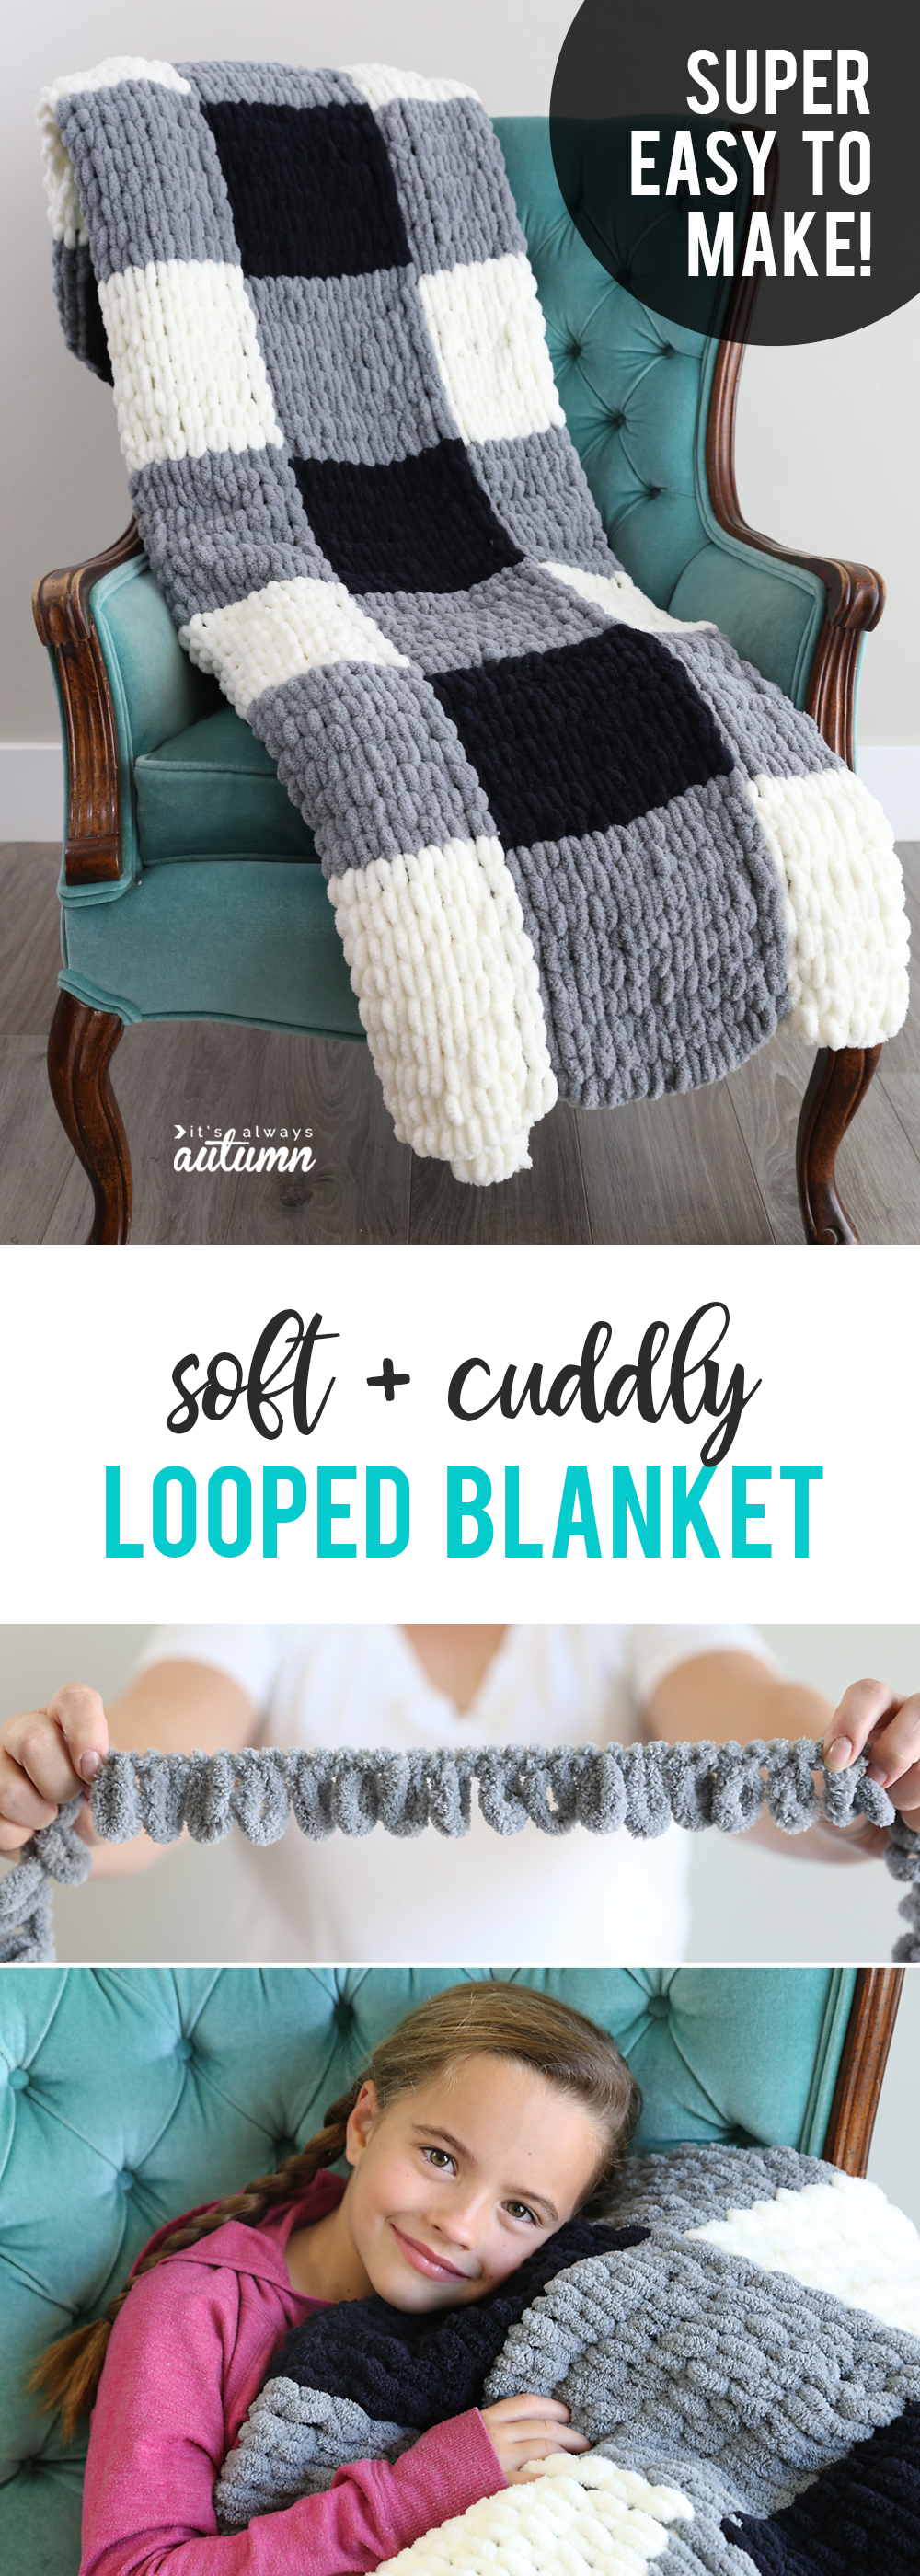 Finger knitting is SO EASY with new loop yarn. You can make a gorgeous chunky knit blanket without knowing how to knit!